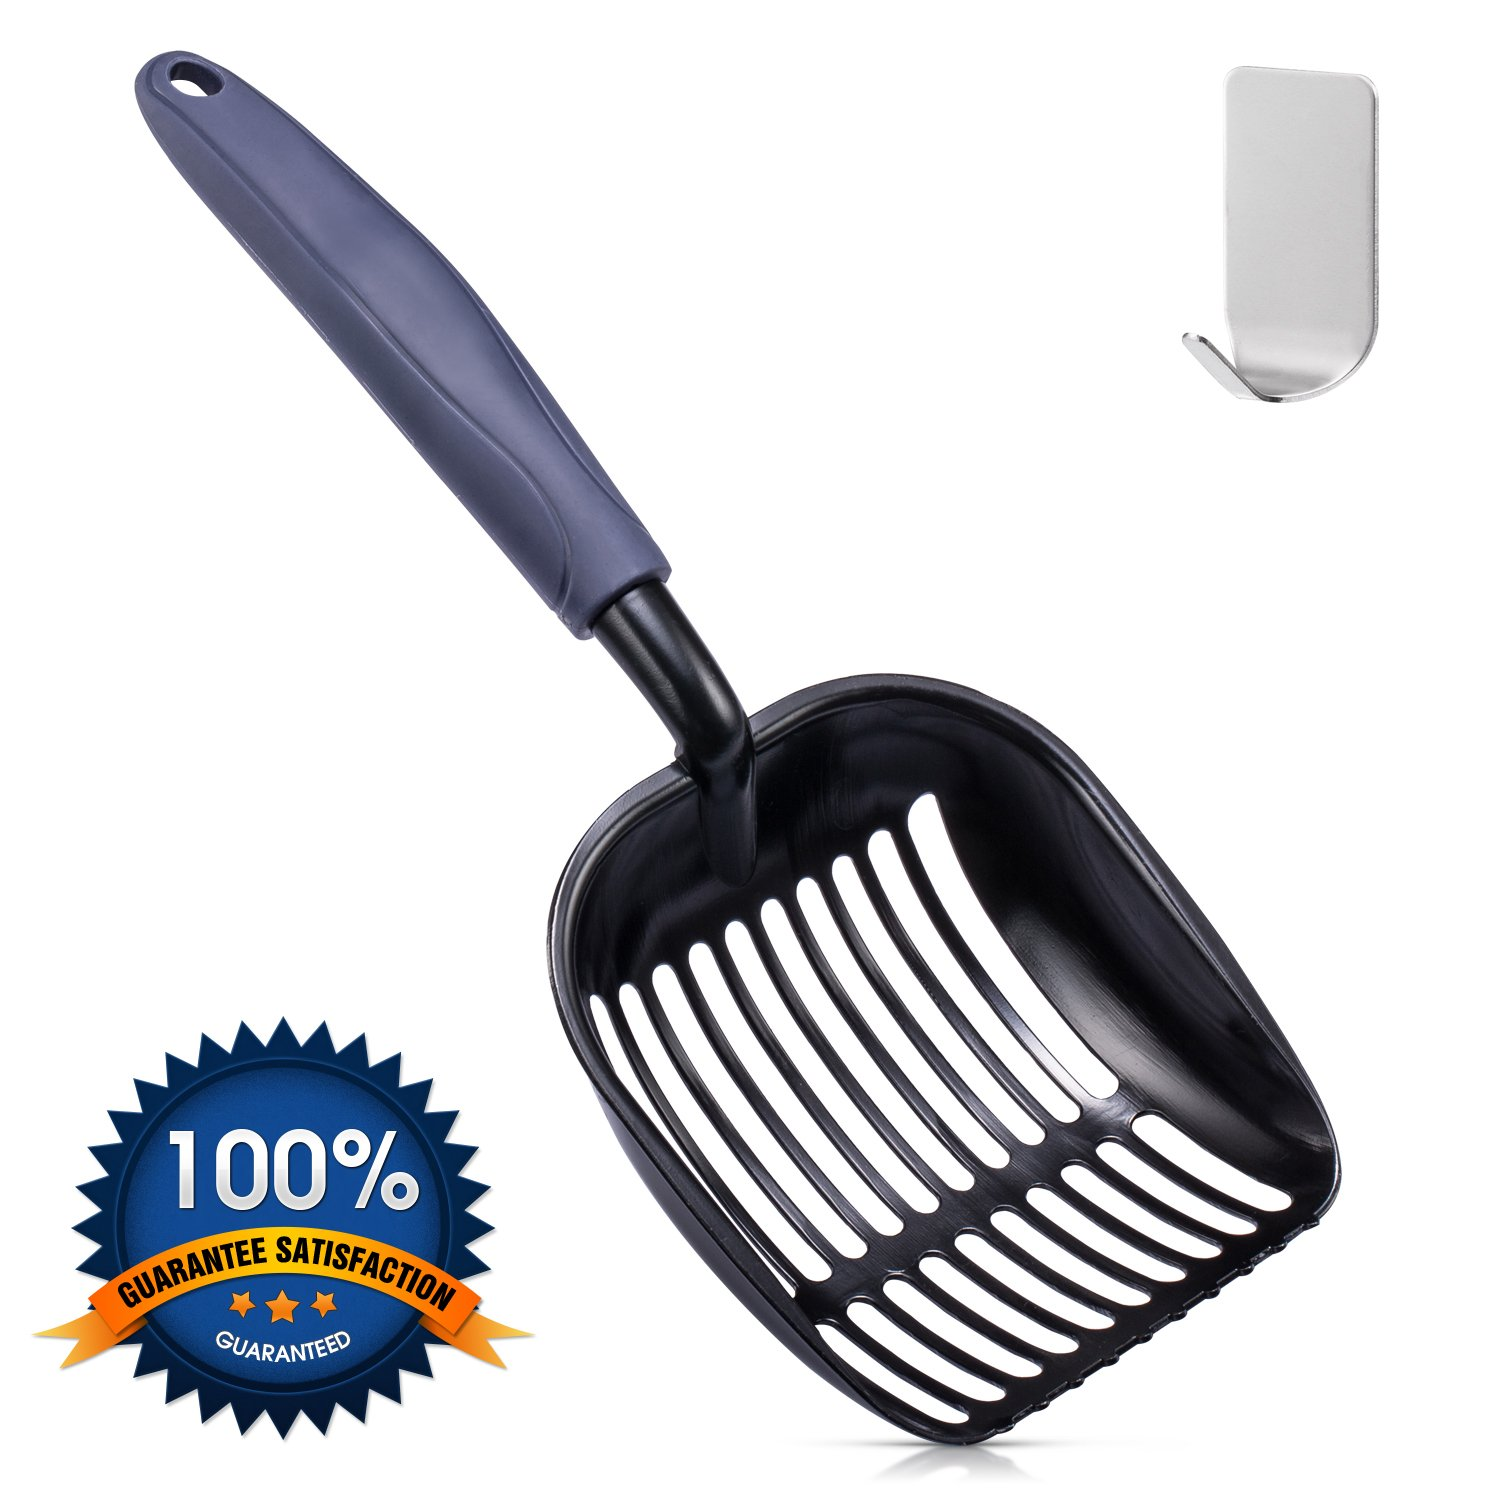 DODODO PET SUPPLIES Cat Litter Scoop, Durable Pet Kitty Kitten Sifter with Deep Shovel, Upgrade Solid Core Long Handle Aluminum Alloy Pooper Scooper with Round Teeth, Metal Holder